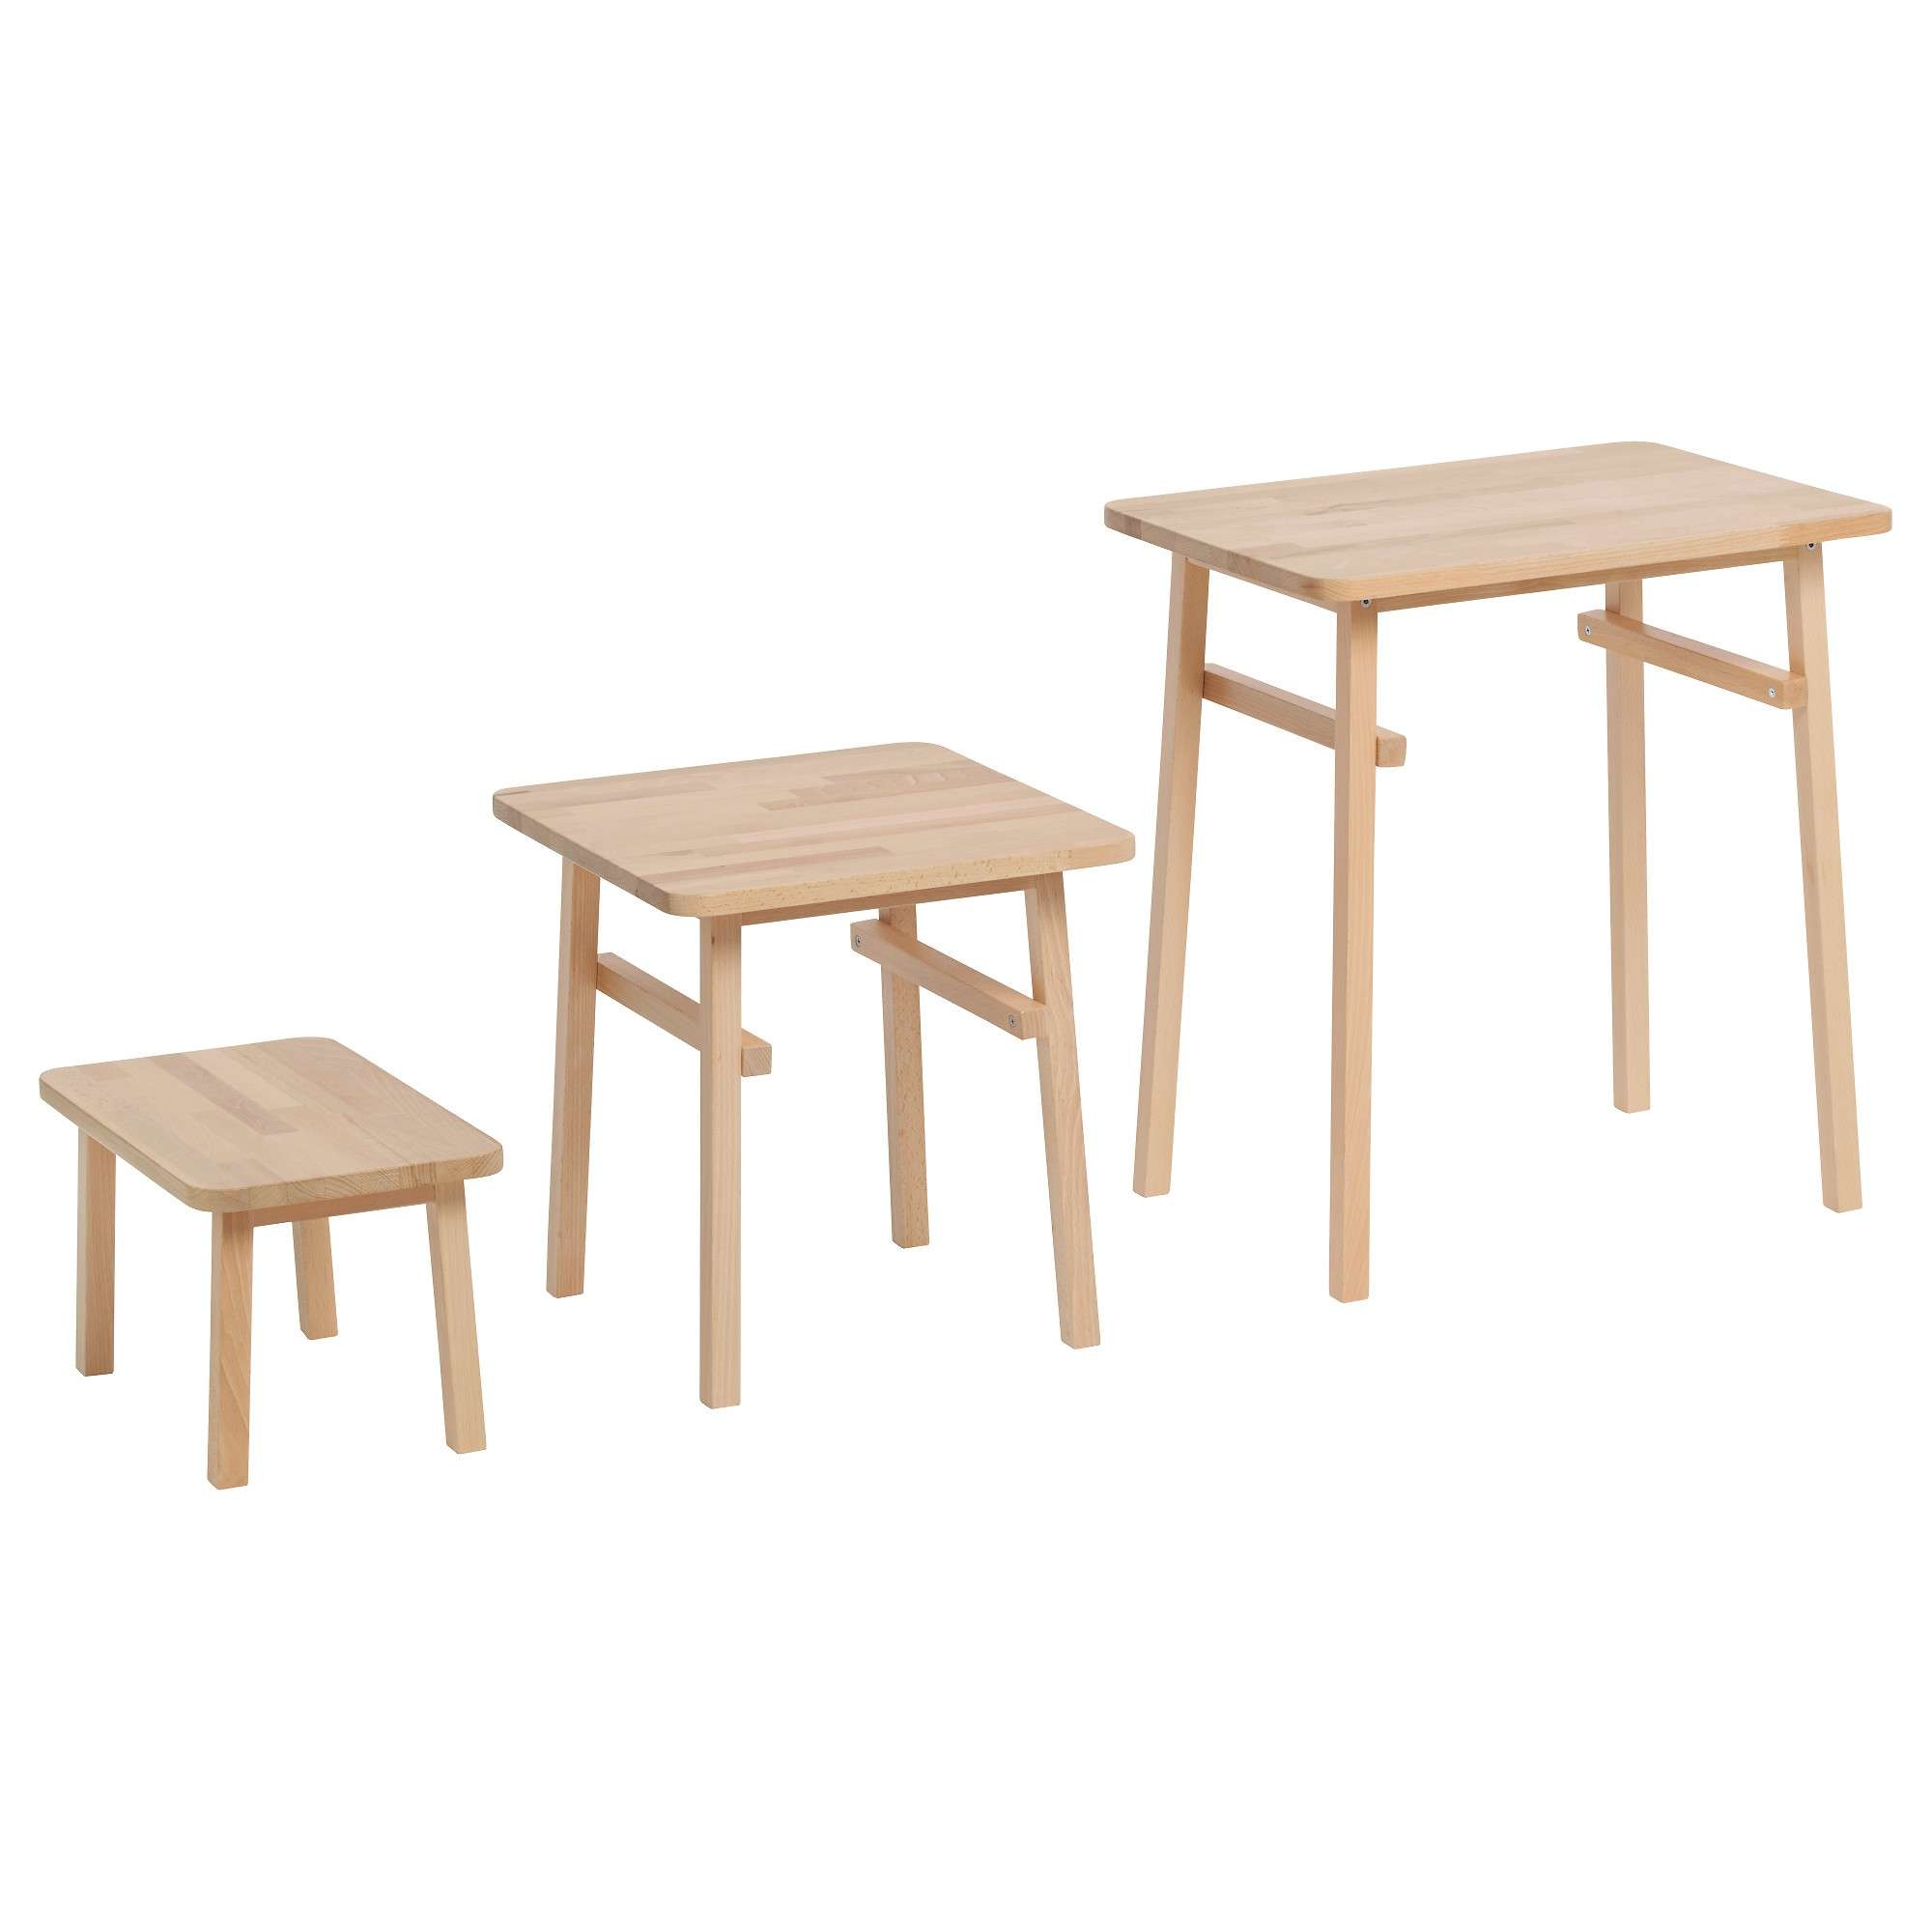 Ypperlig Nest Of Tables, Set Of 3 Beech – Ikea Inside Well Known Beech Coffee Tables (View 14 of 20)